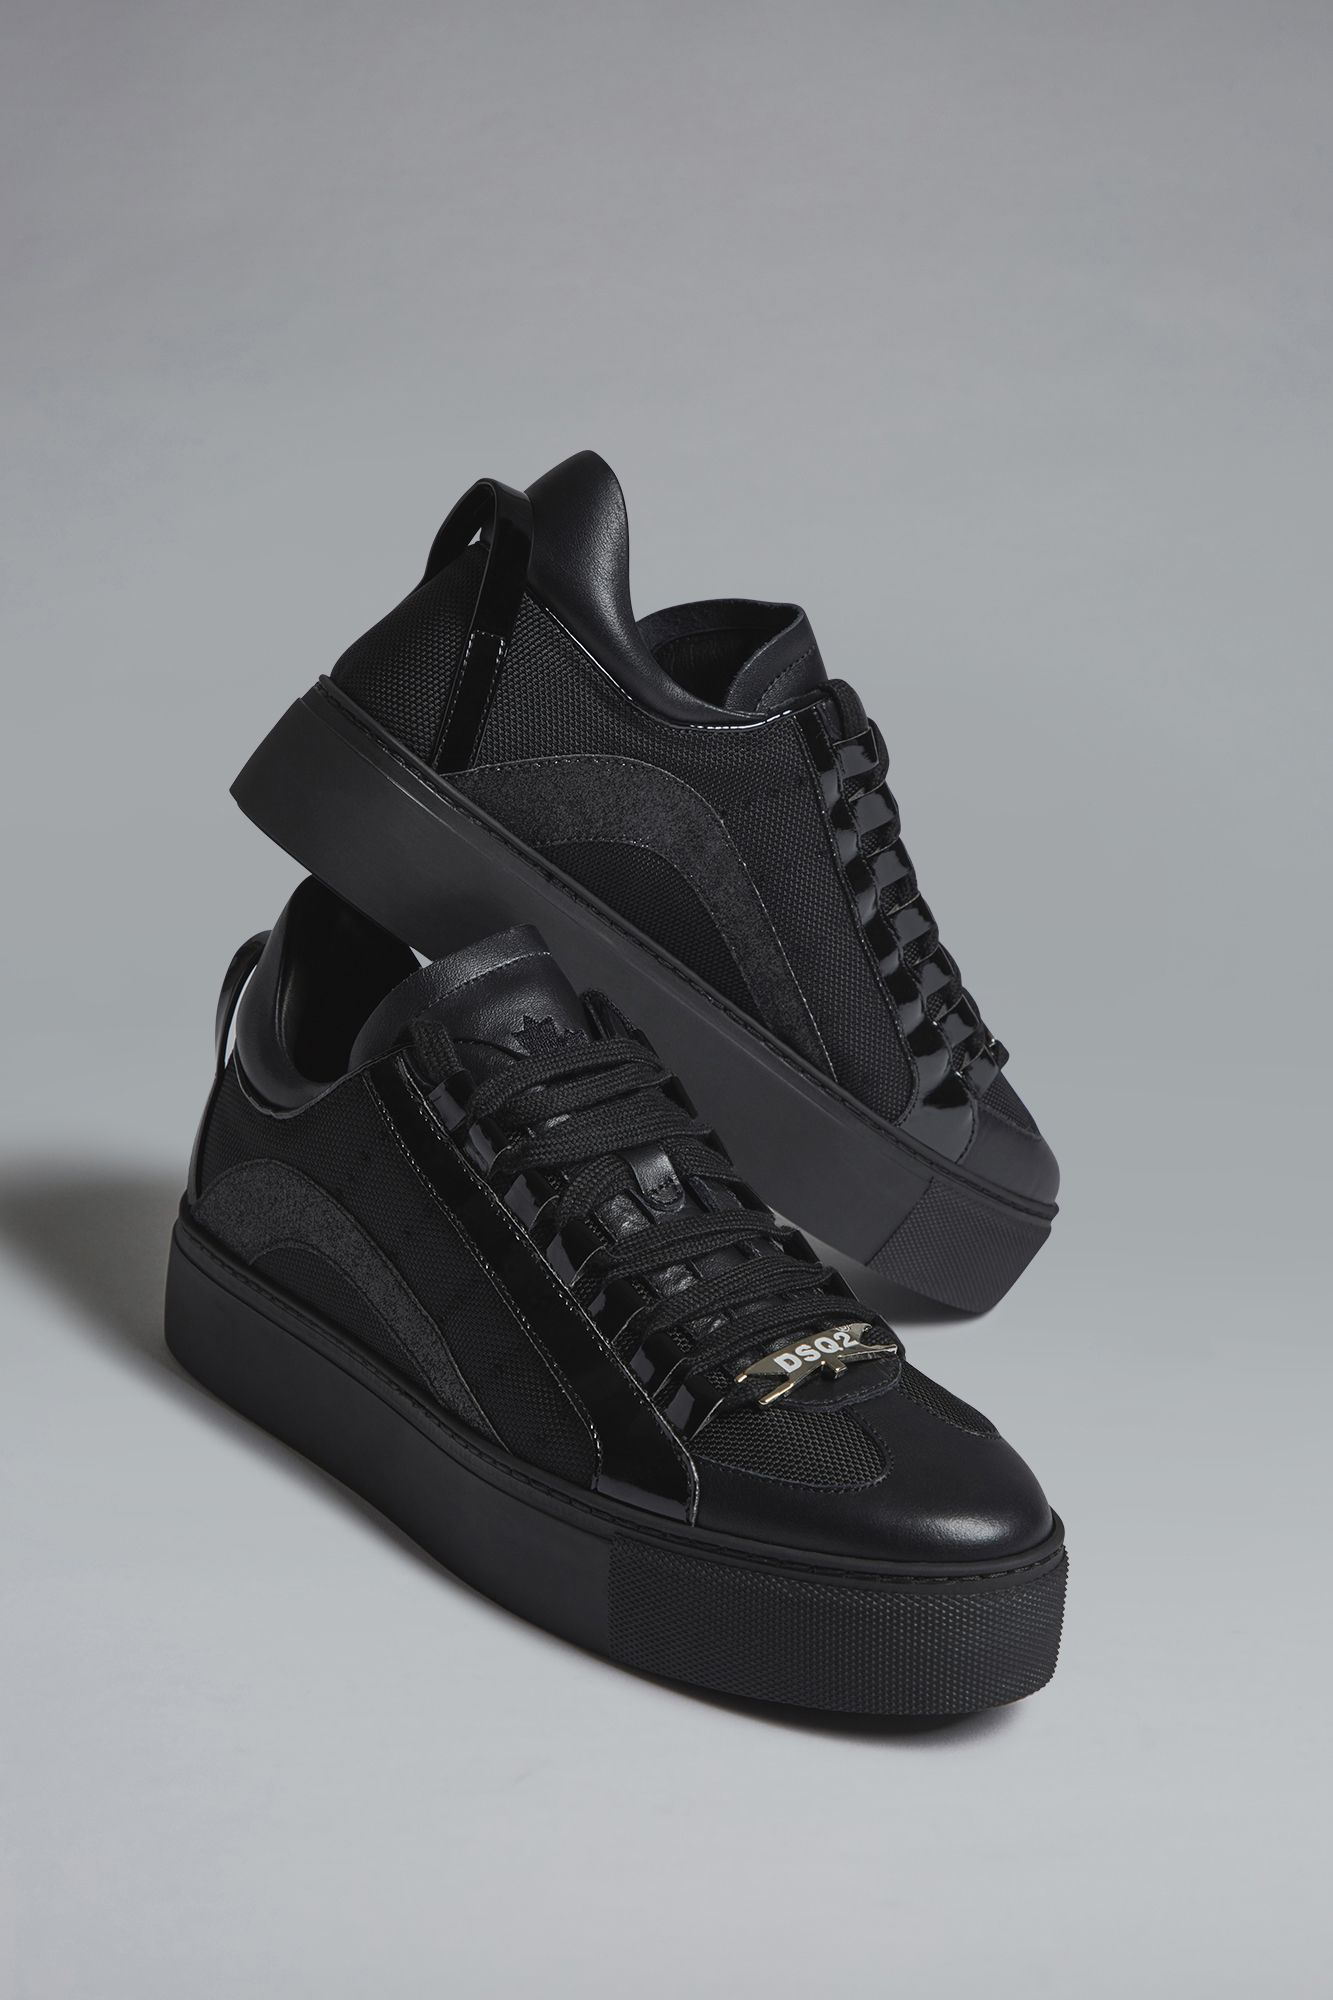 Dsquared2 551 Sneakers - Sneakers for